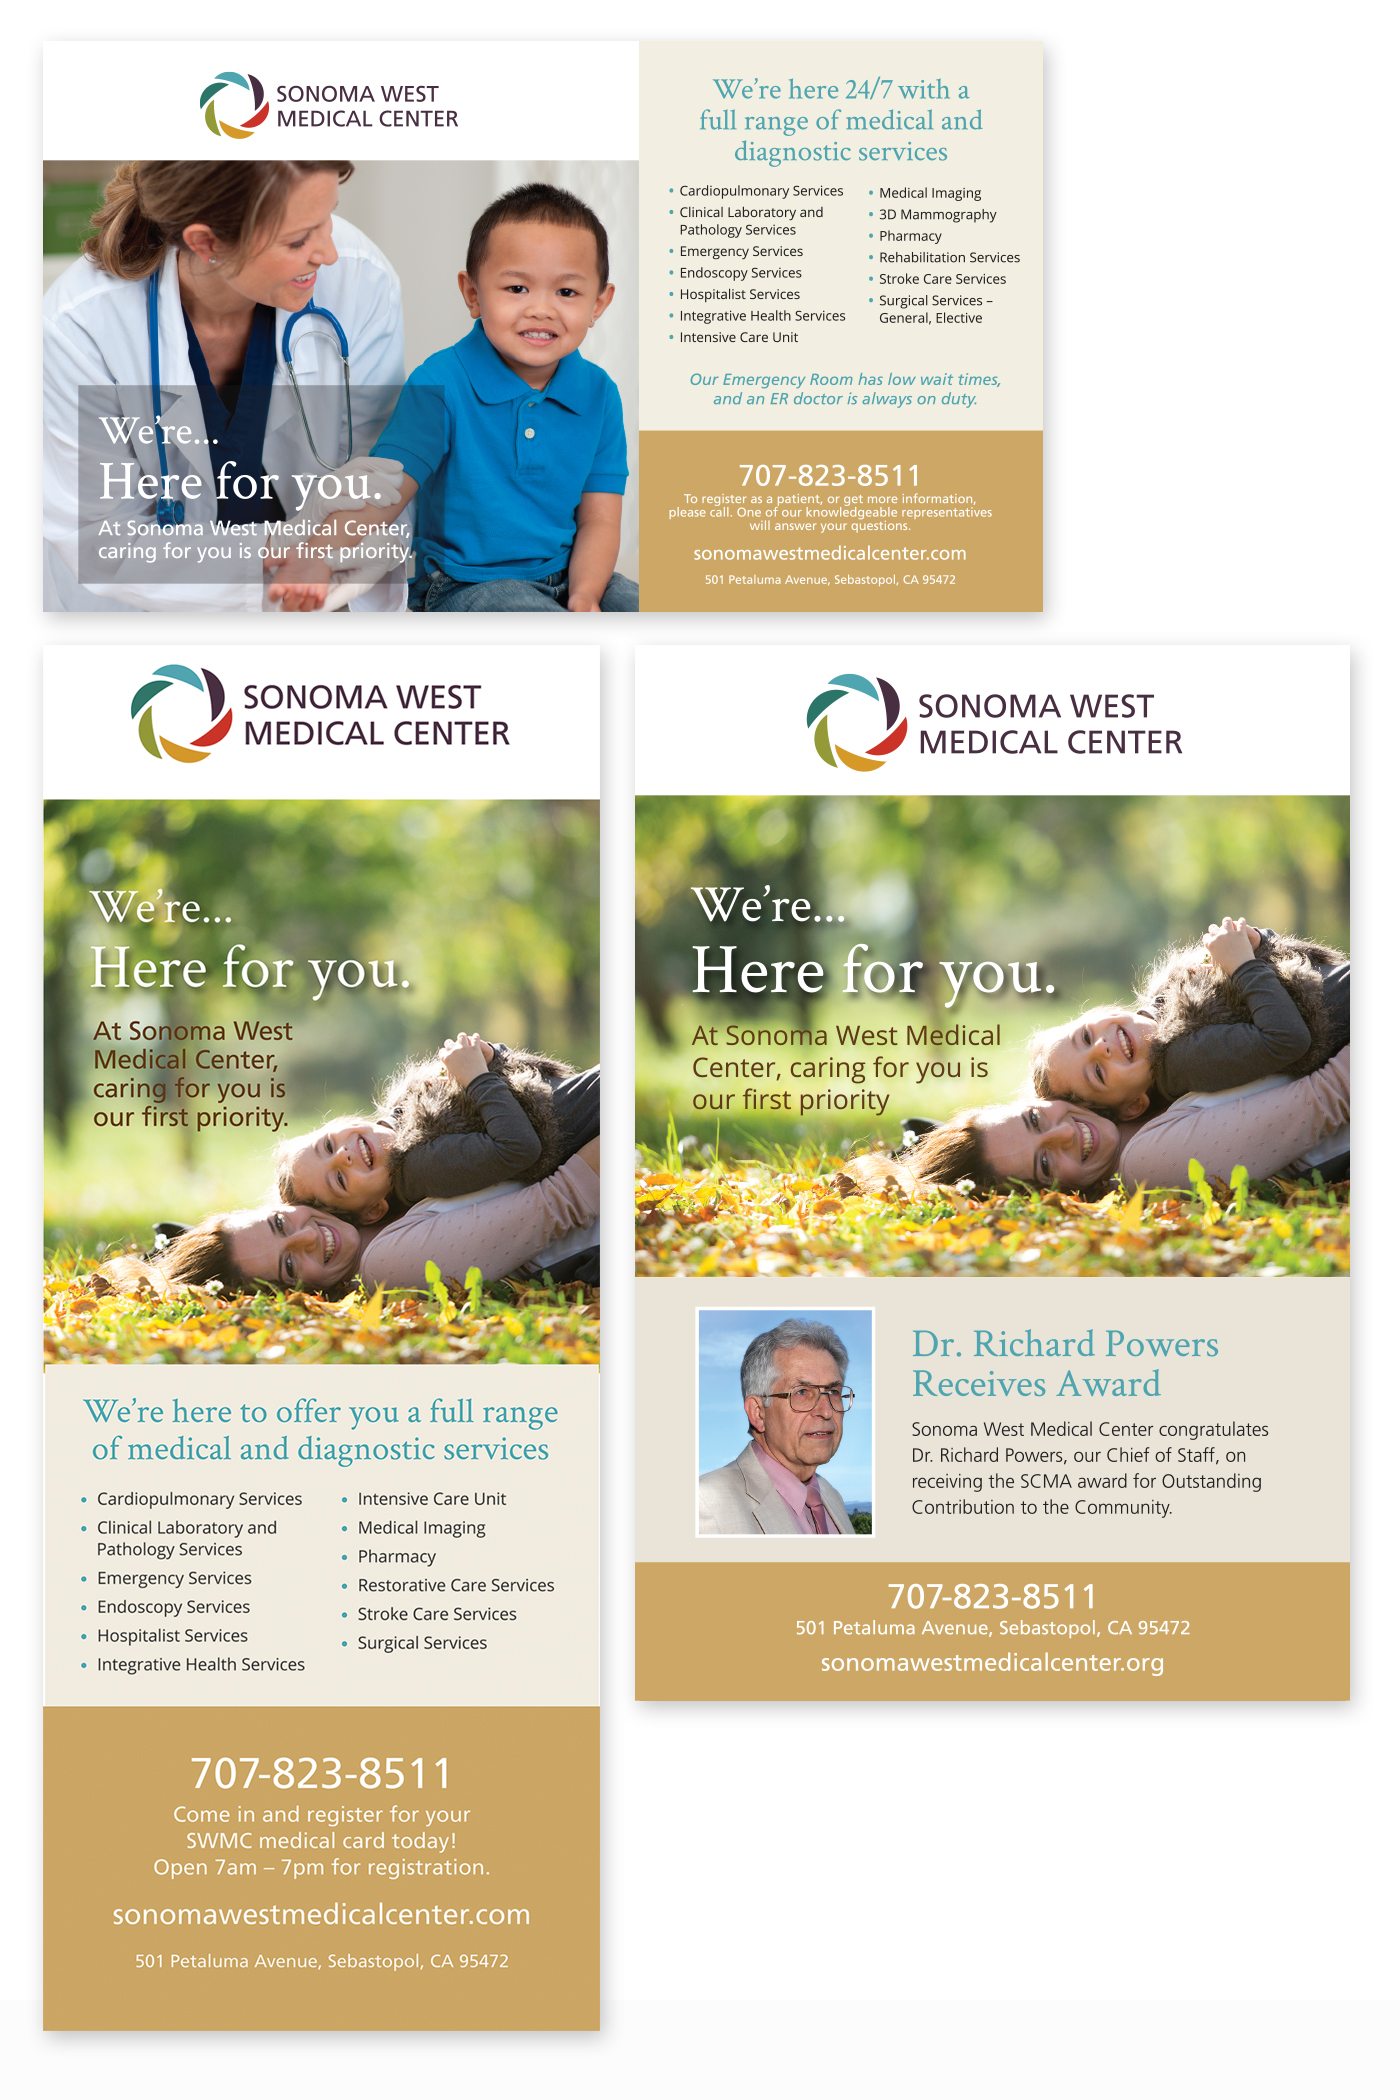 Sonoma West Medical Center ads & banners